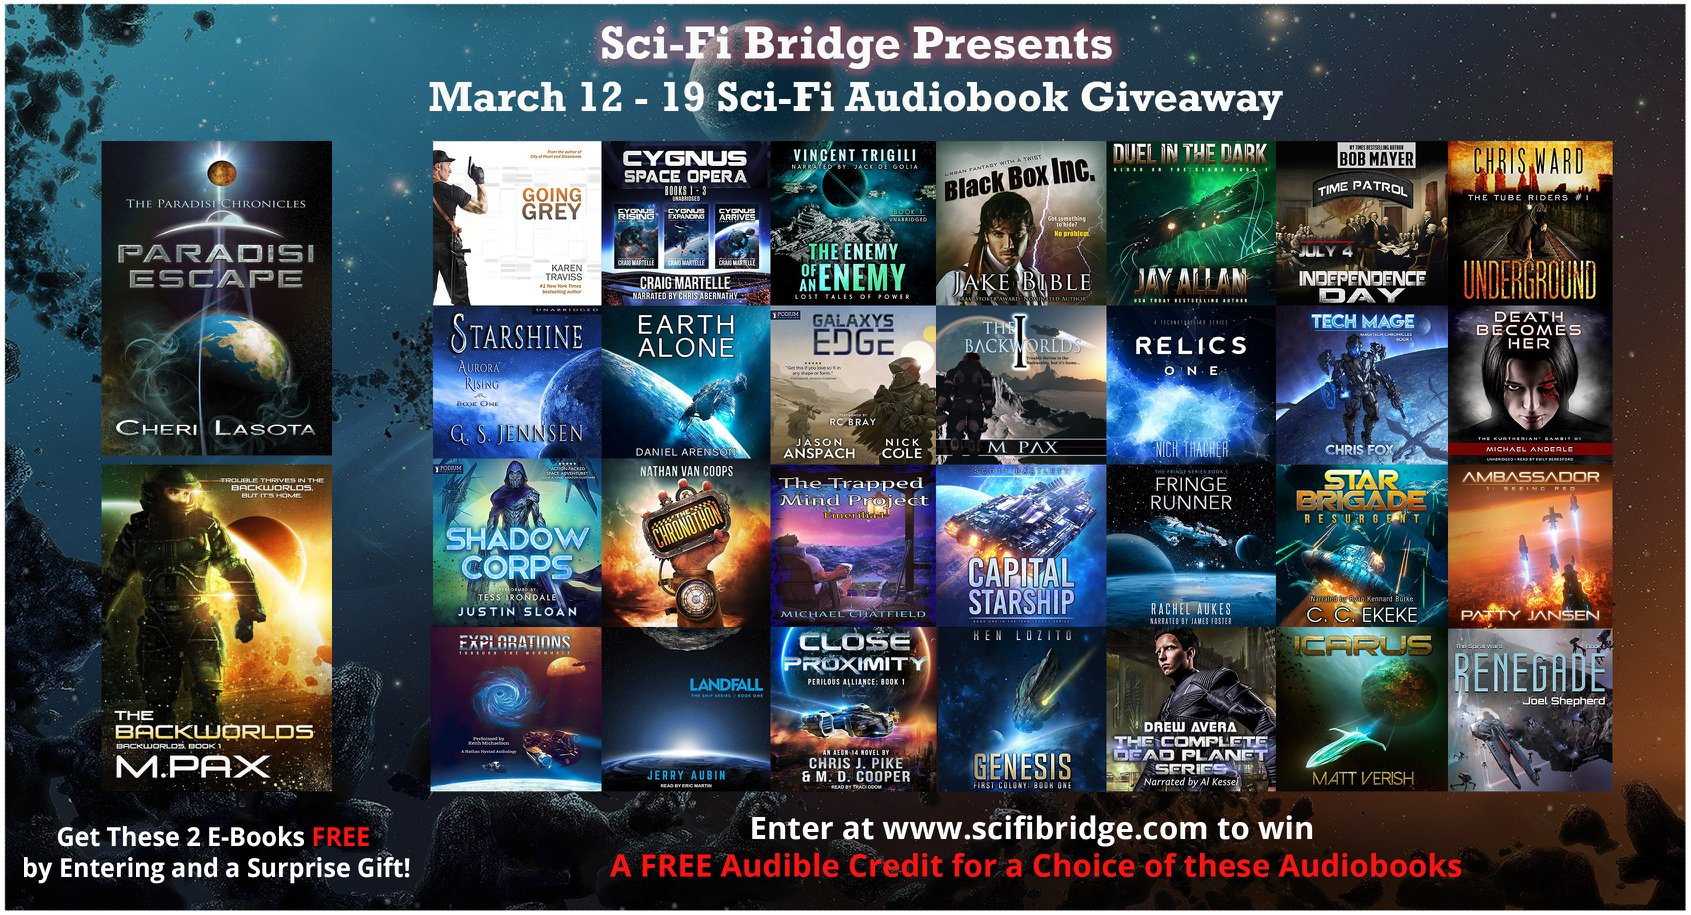 SciFiBridge_AudiobookGiveaway.jpg